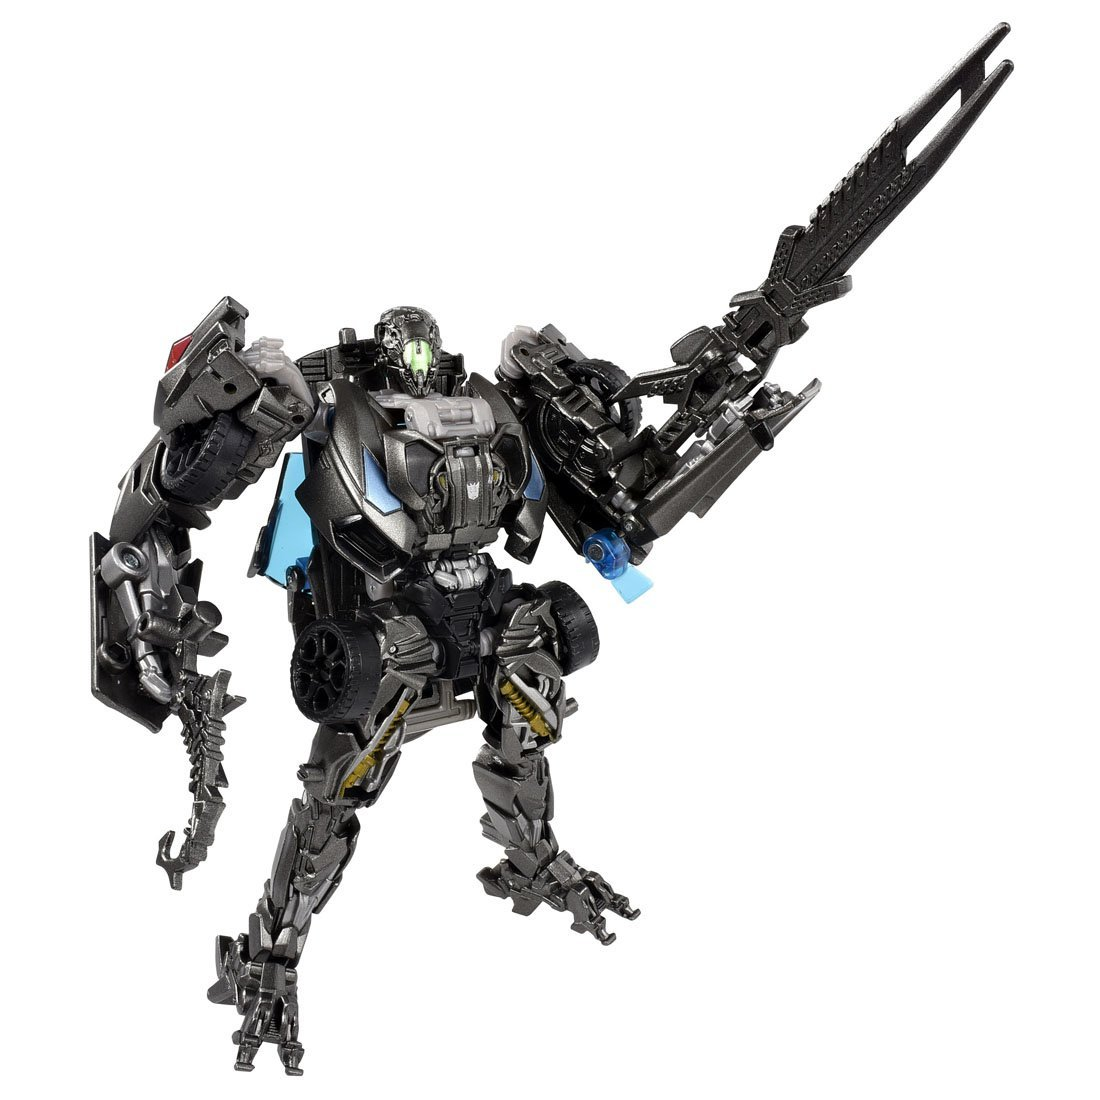 Lockdown - Transformers Toys - TFW2005